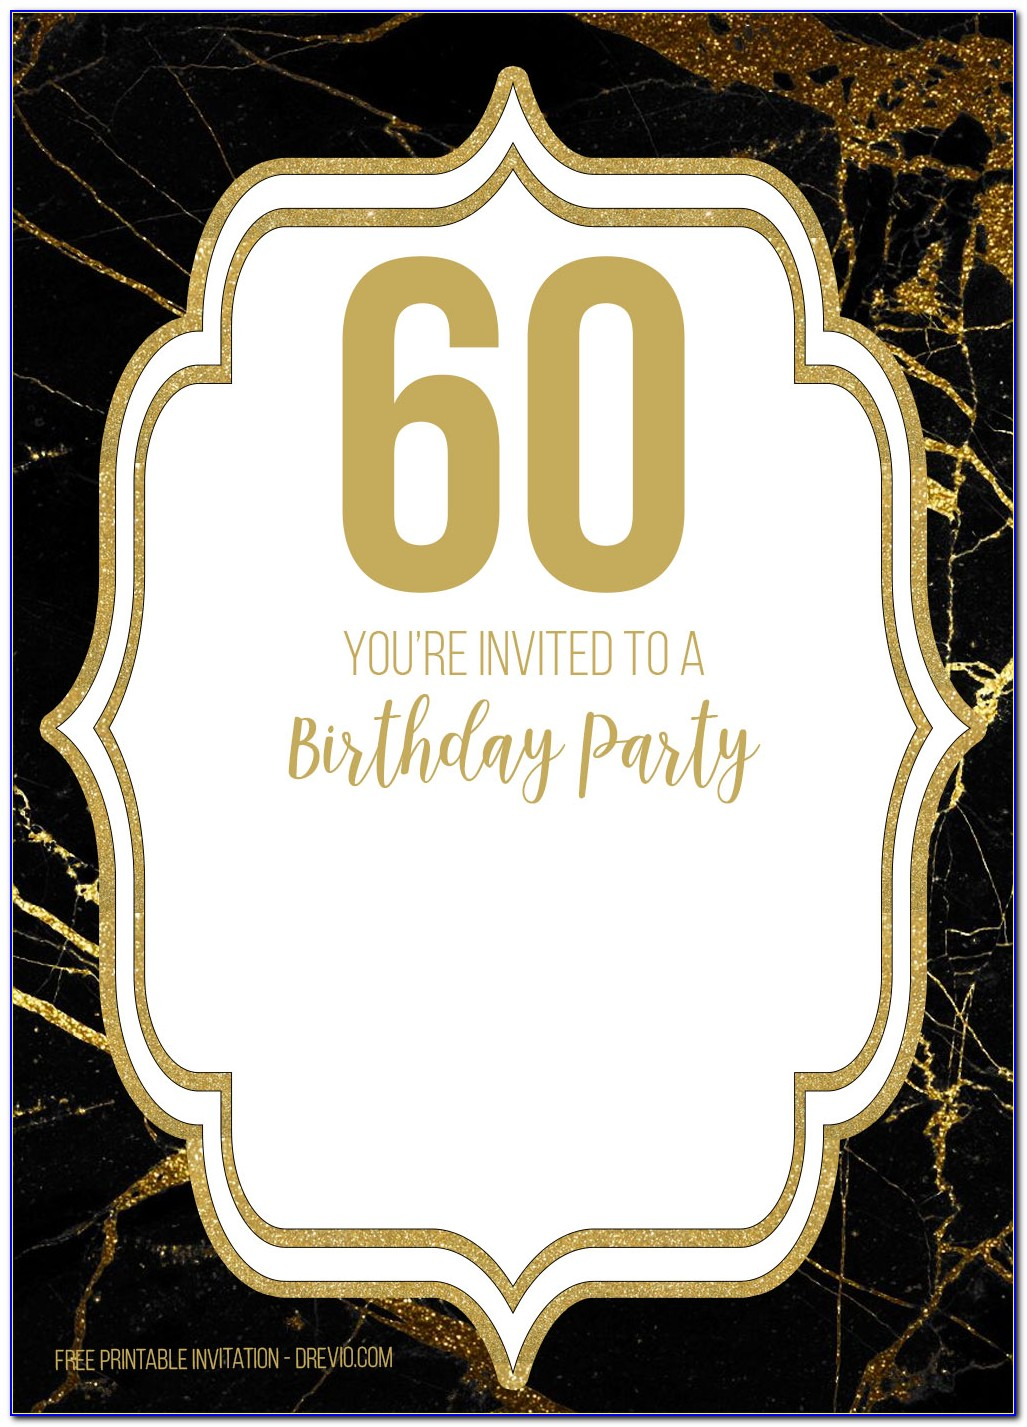 Free Printable 60th Birthday Party Invitation Templates